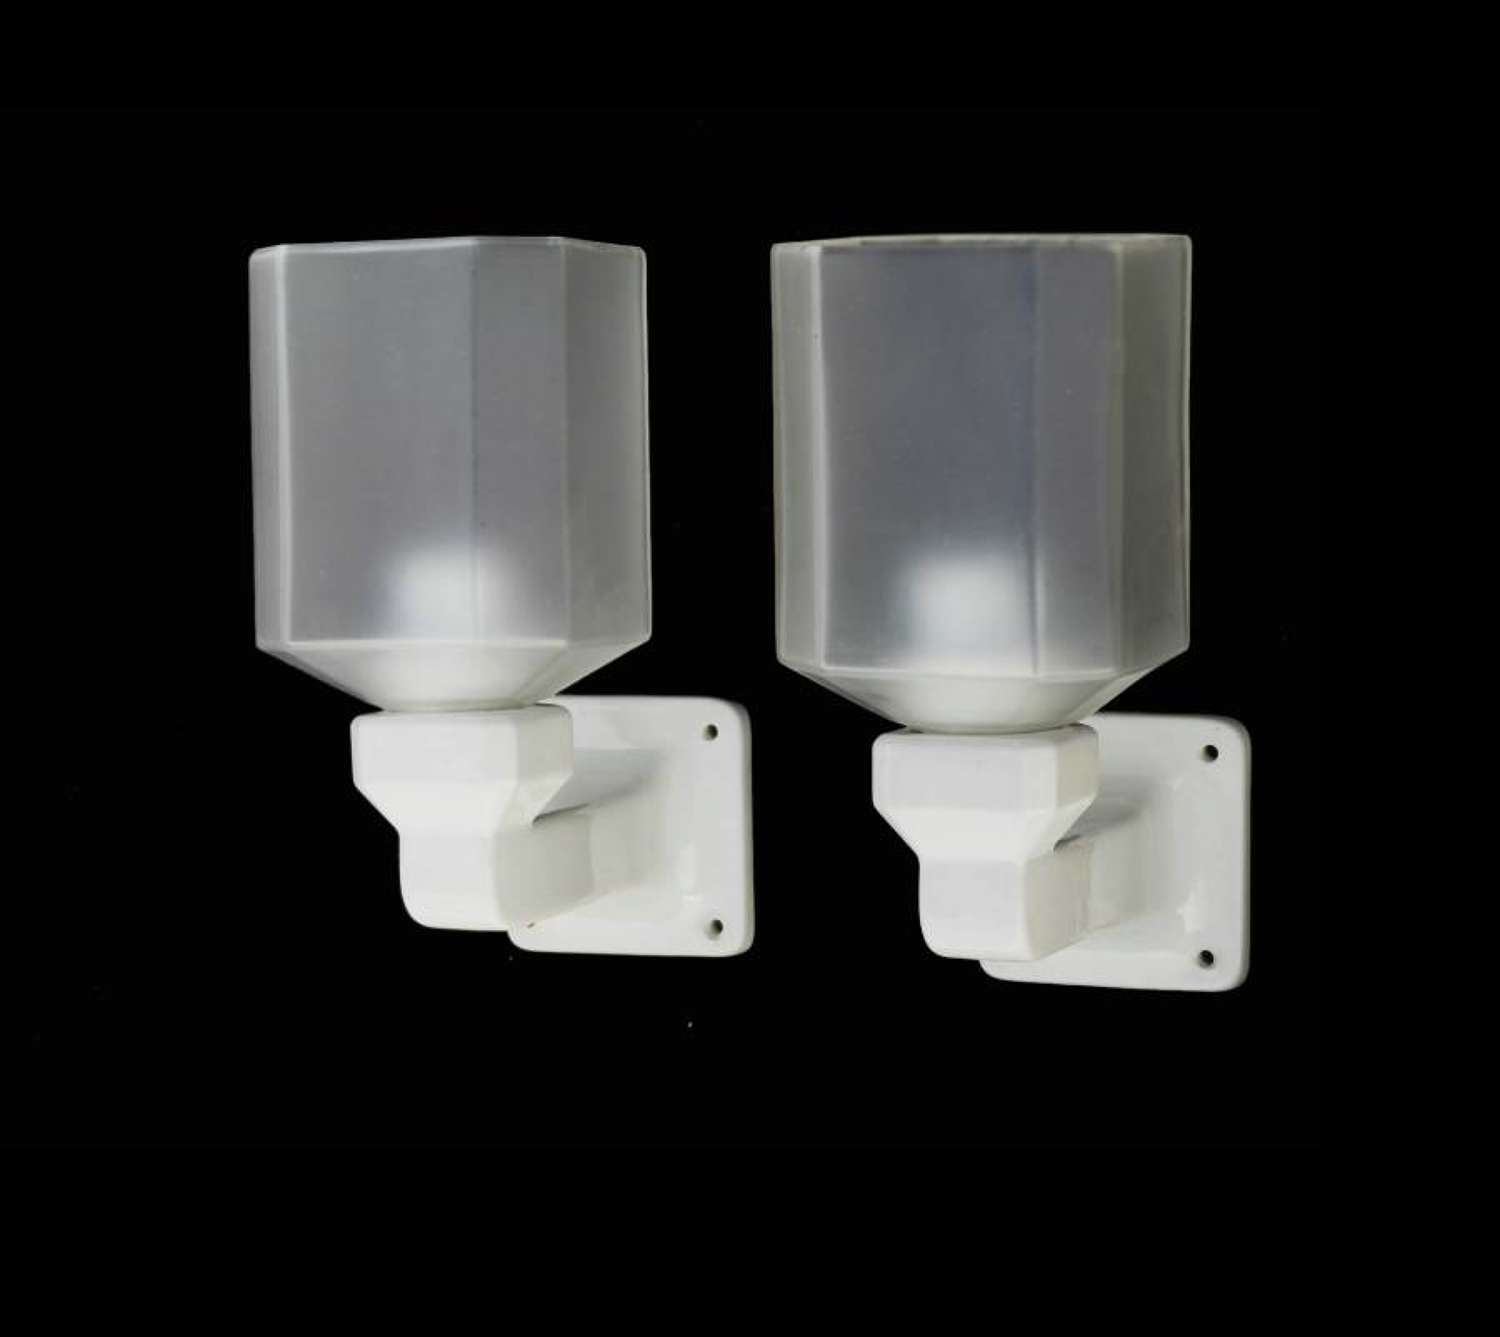 Pair of Art Deco Wall Lights French Ceramic Sconces 2 pairs available